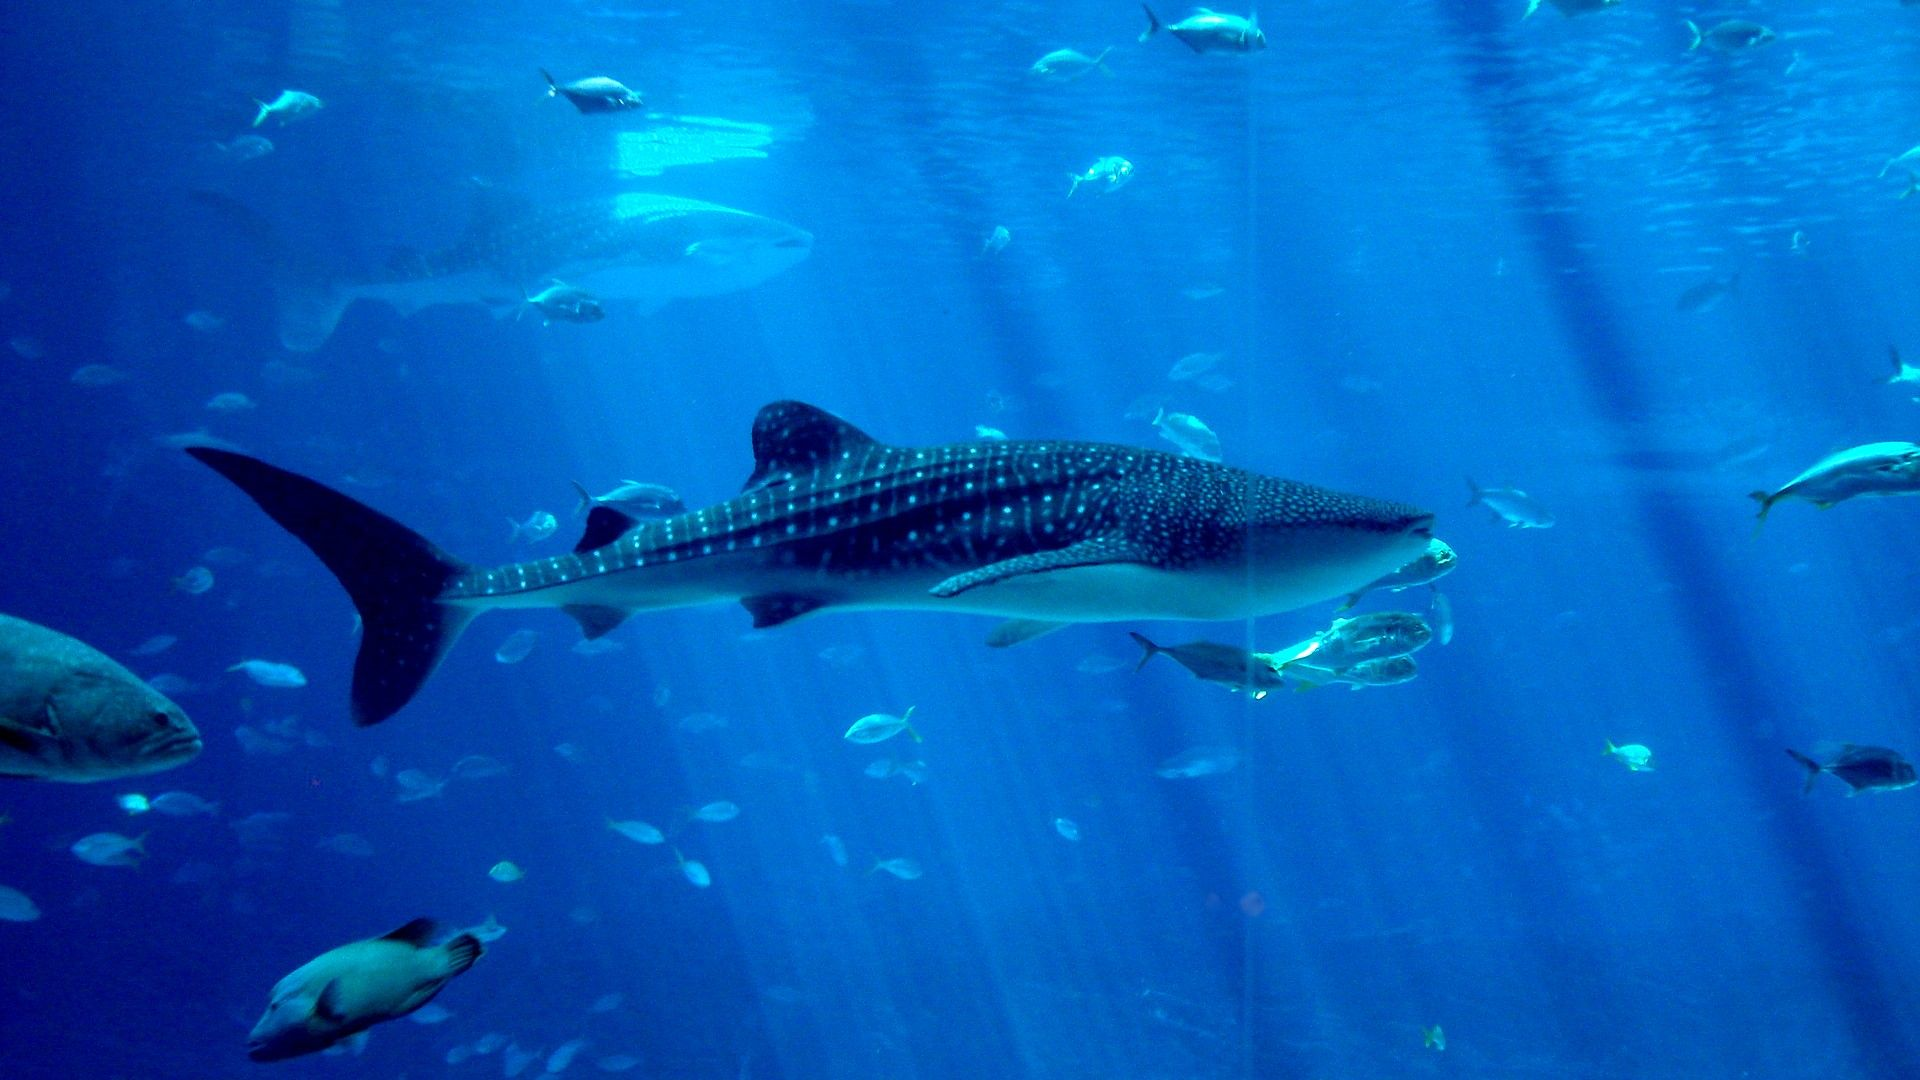 Whale Shark Pics By Dmitrii Armall On GOLDWALL